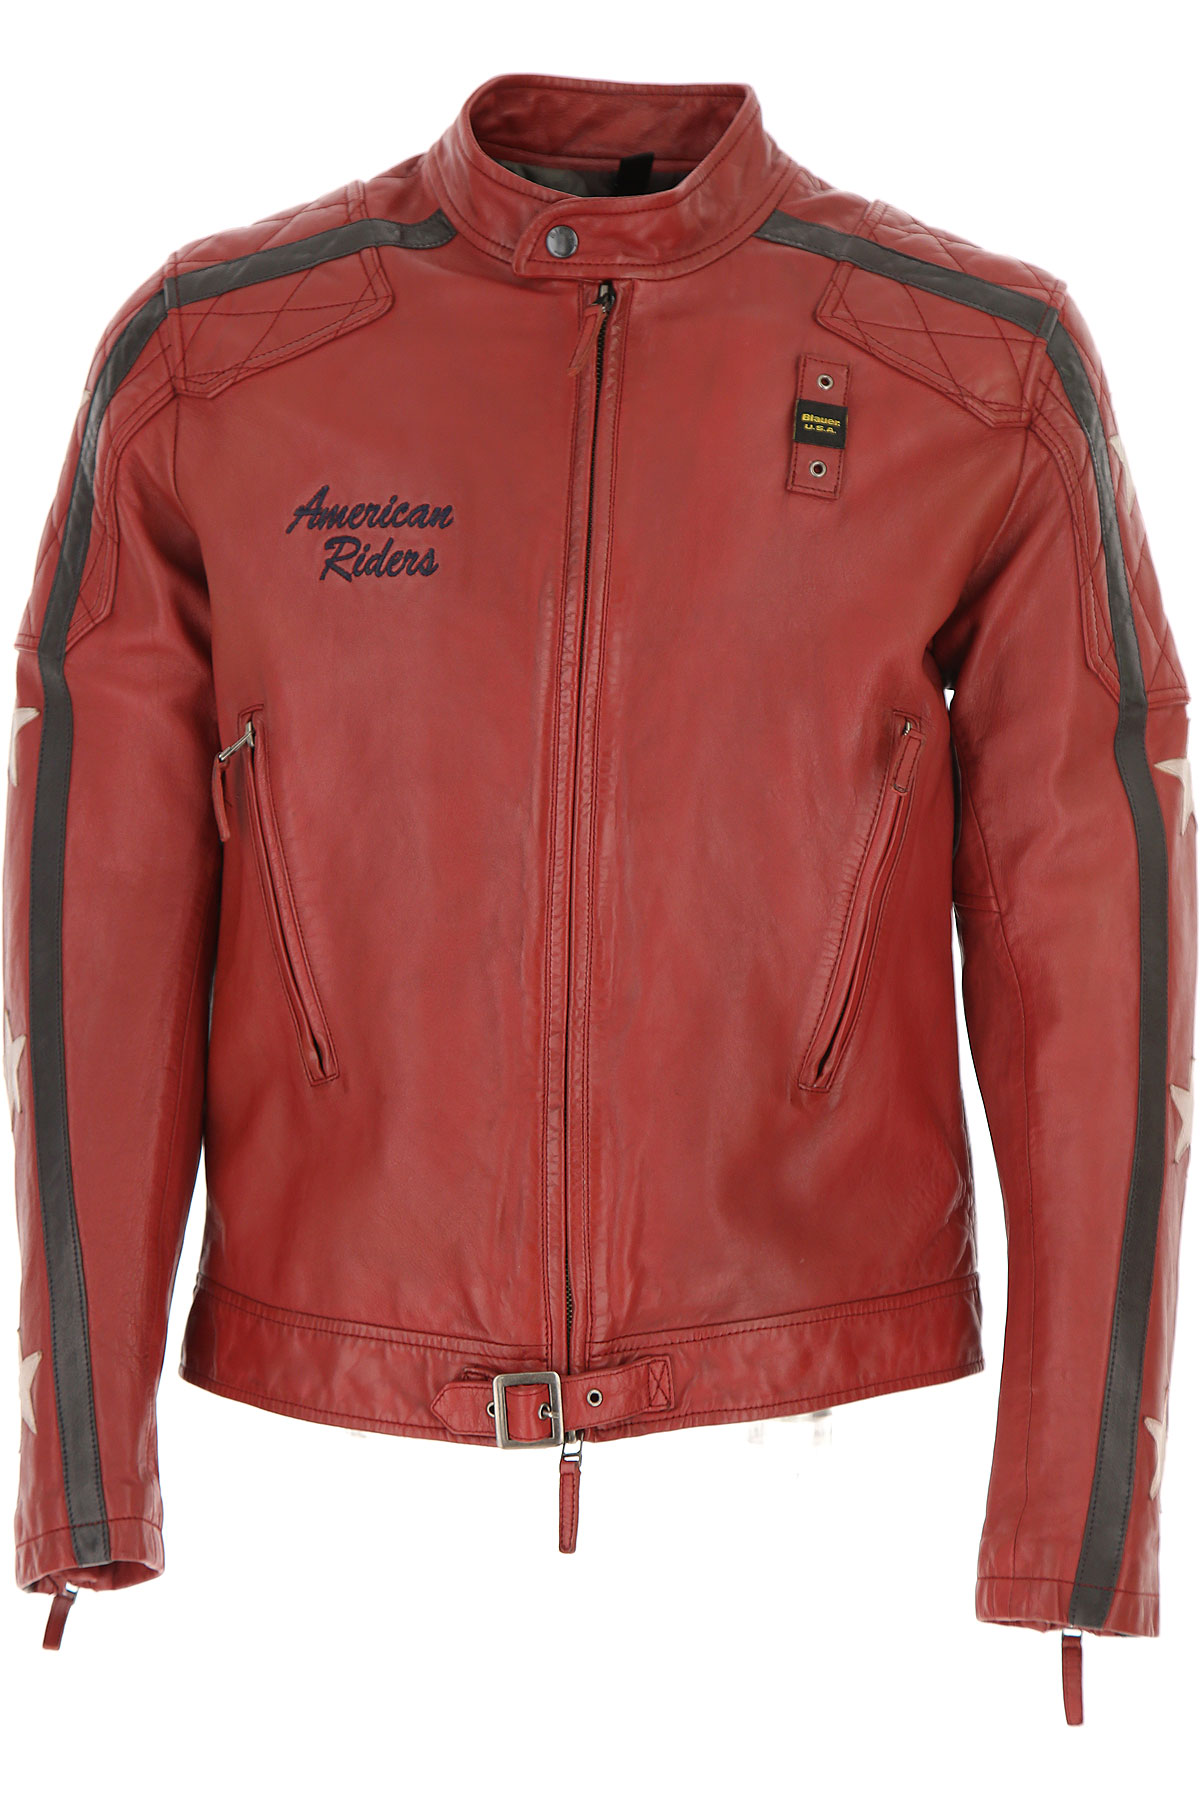 Image of Blauer Jacket for Men On Sale, Red, Leather, 2017, L M S XL